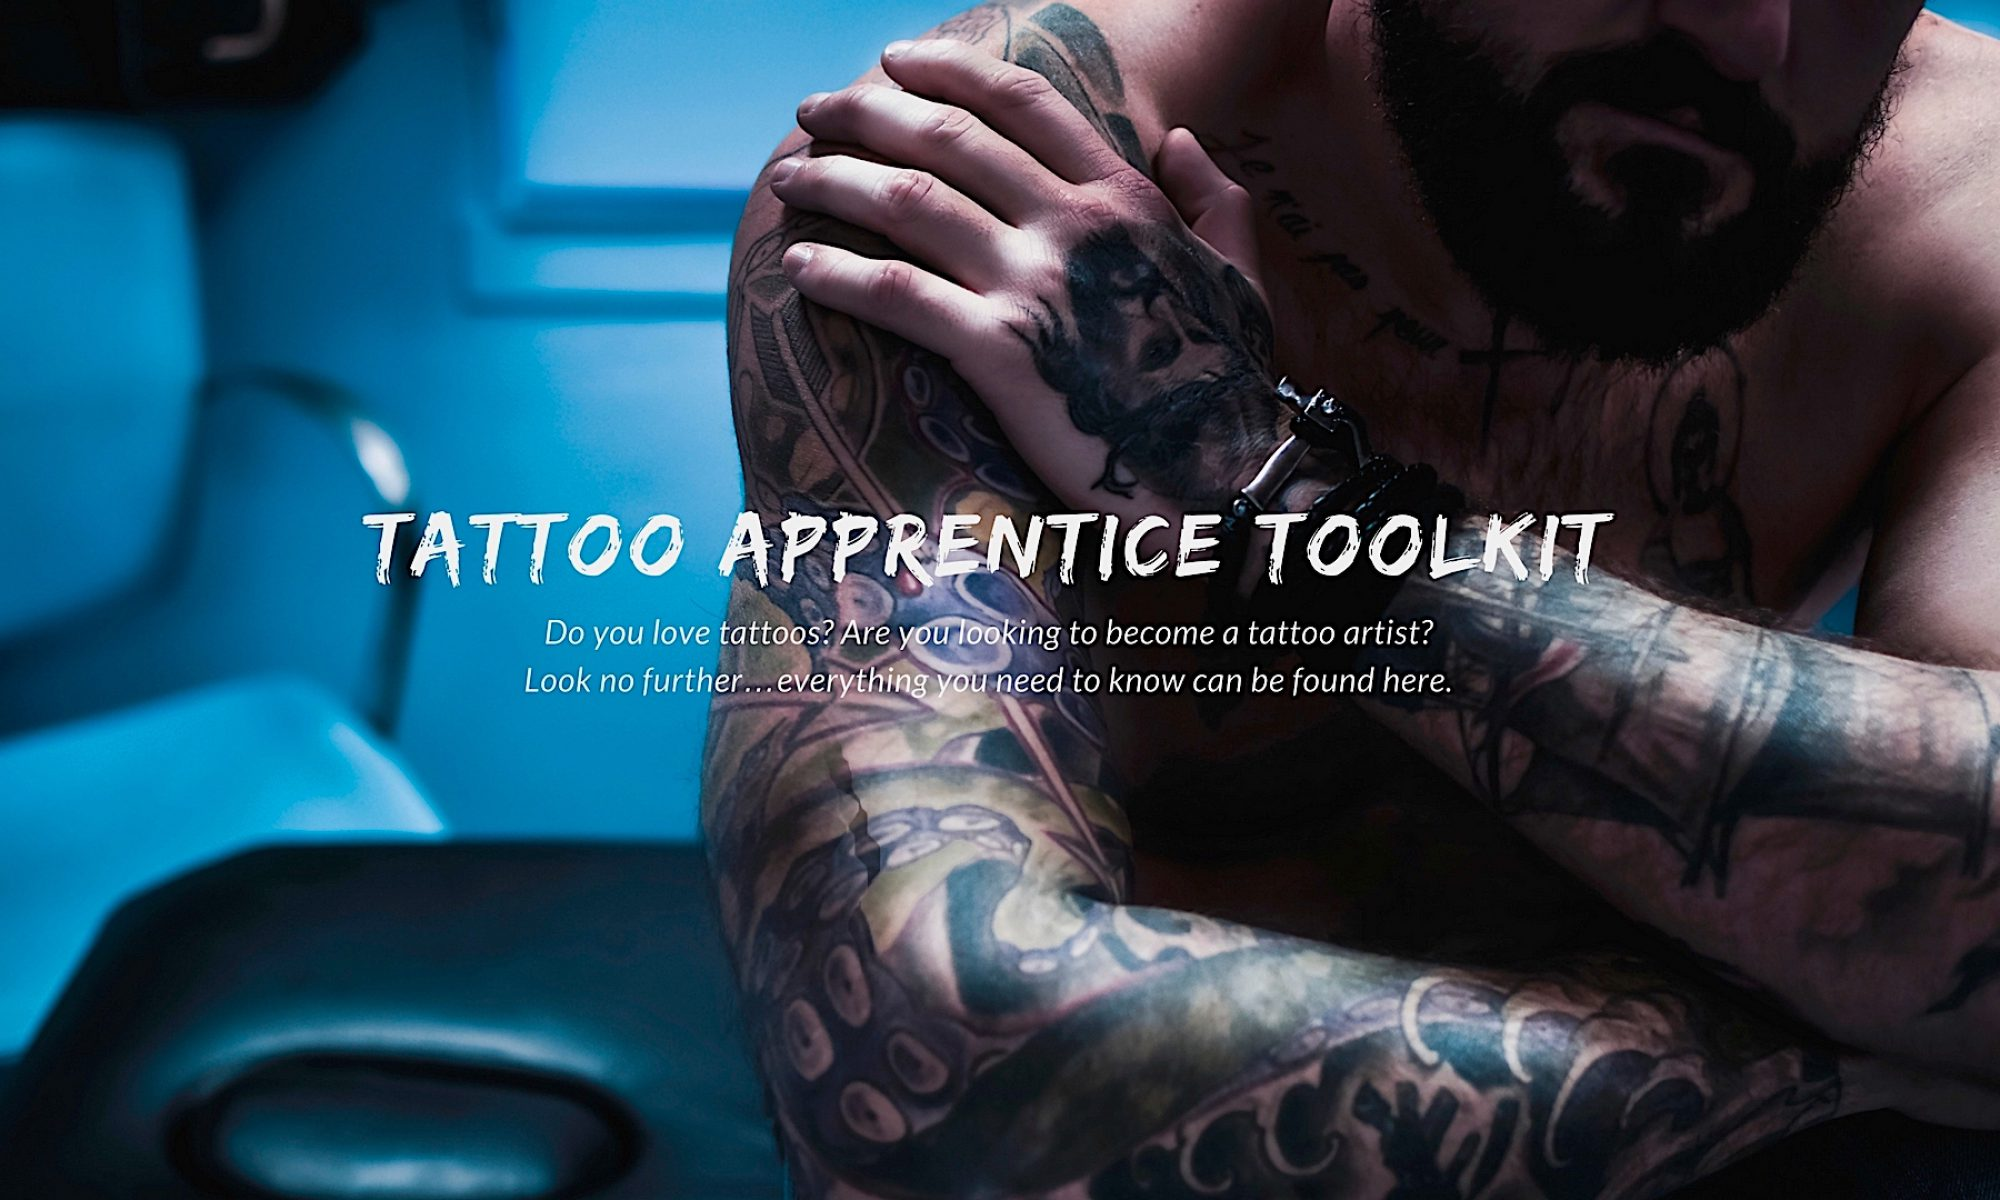 Tattoo Apprentice Toolkit